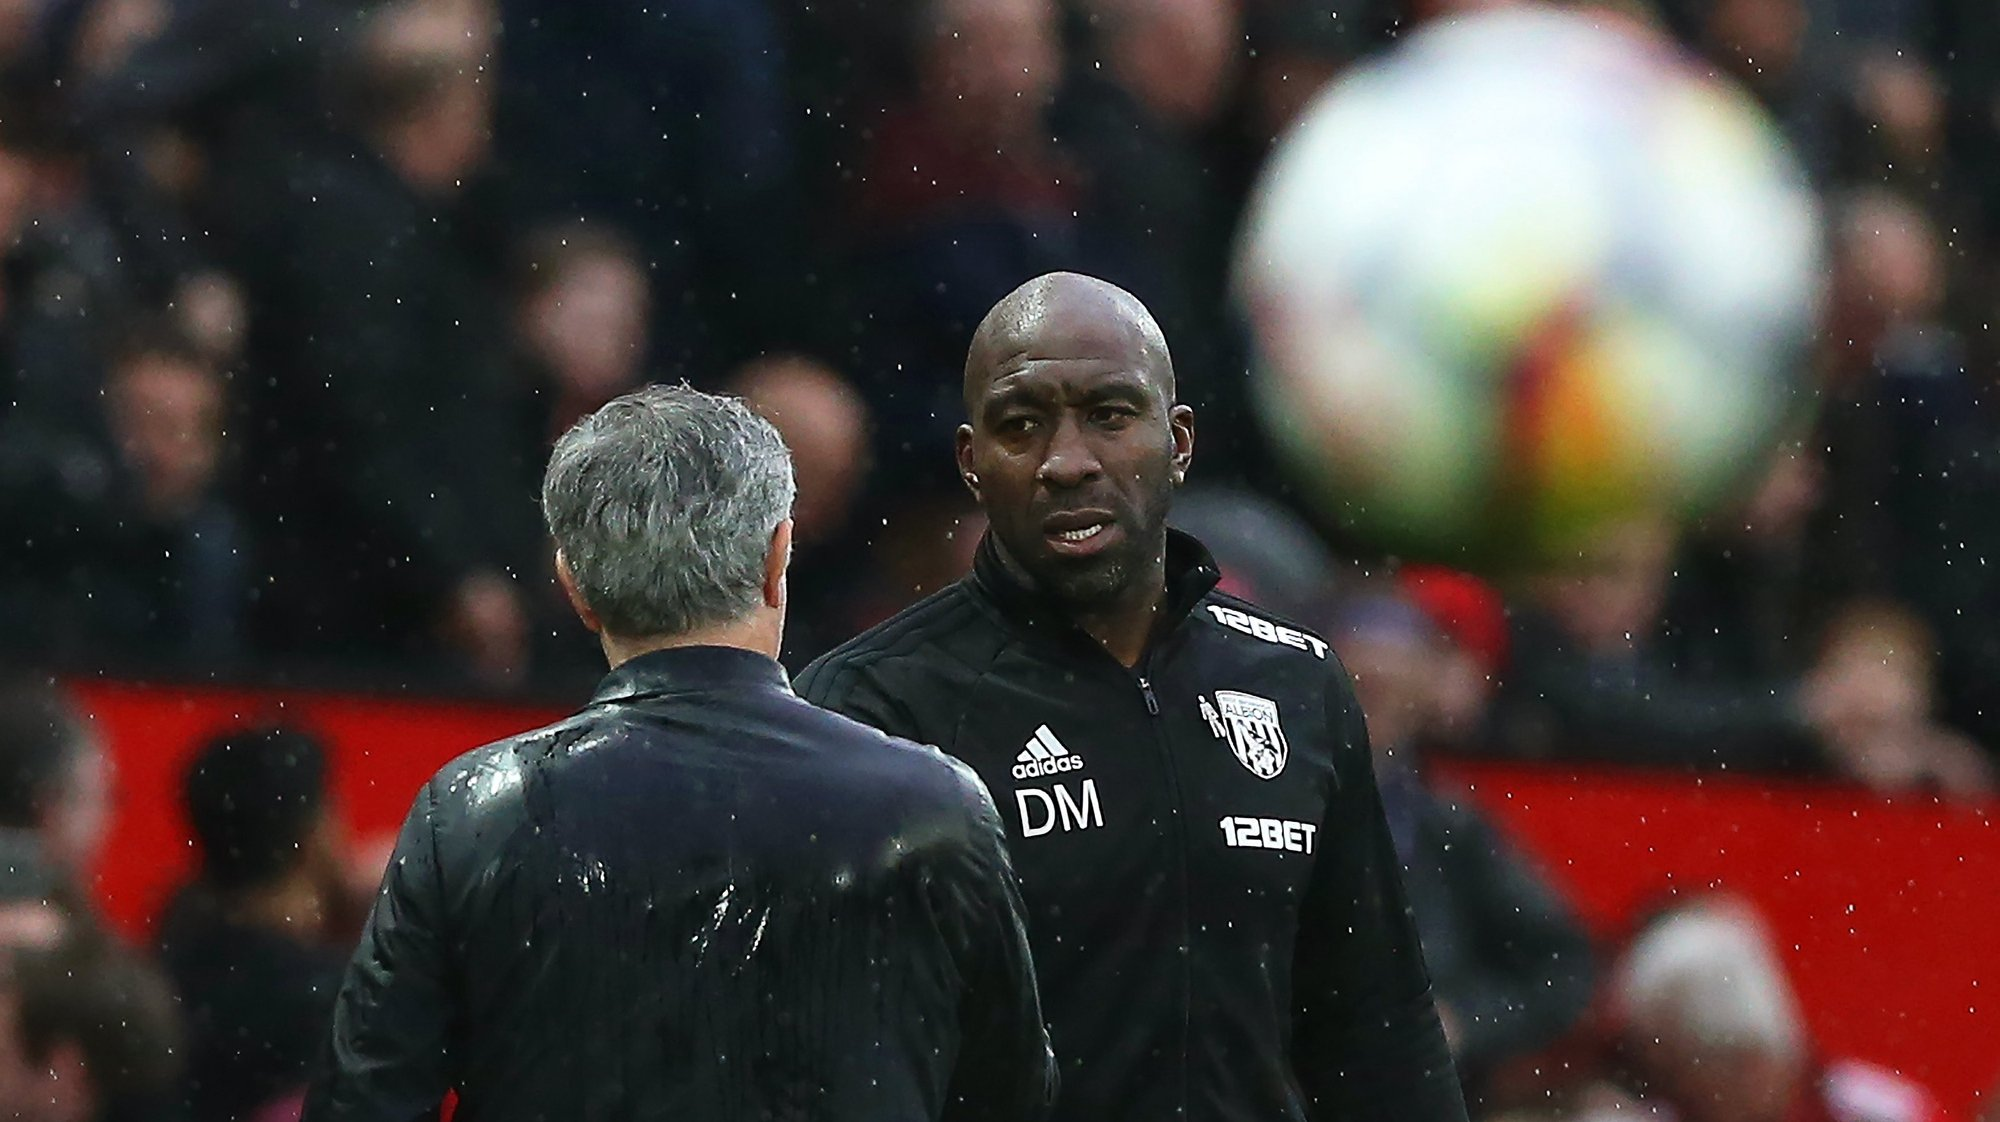 epa06671544 West Bromwich's manager Darren Moore (R) talks with Manchester United's manager Jose Mourinho (L) during the English Premier League soccer match between Manchester United and West Bromwich Albion at Old Trafford in Manchester, Britain, 15 April 2018.  EPA/NIGEL RODDIS EDITORIAL USE ONLY. No use with unauthorised audio, video, data, fixture lists, club/league logos 'live' services. Online in-match use limited to 75 images, no video emulation. No use in betting, games or single club/league/player publications.